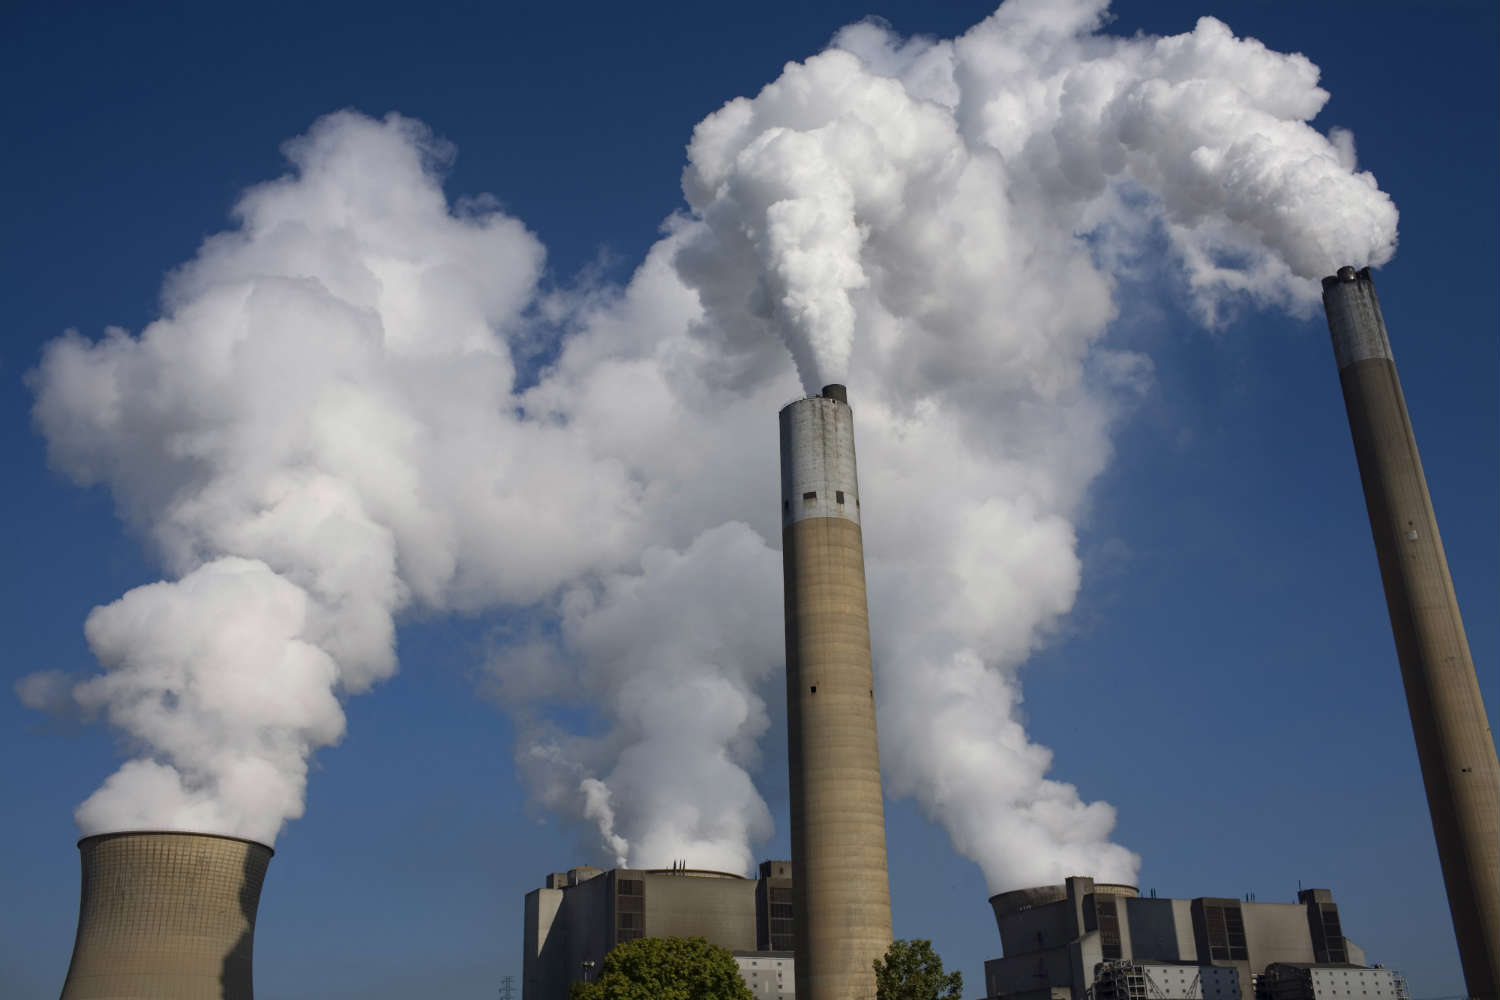 Carbon dioxide is the chief target of EPA regulations, but they'll also help curb conventional pollutants